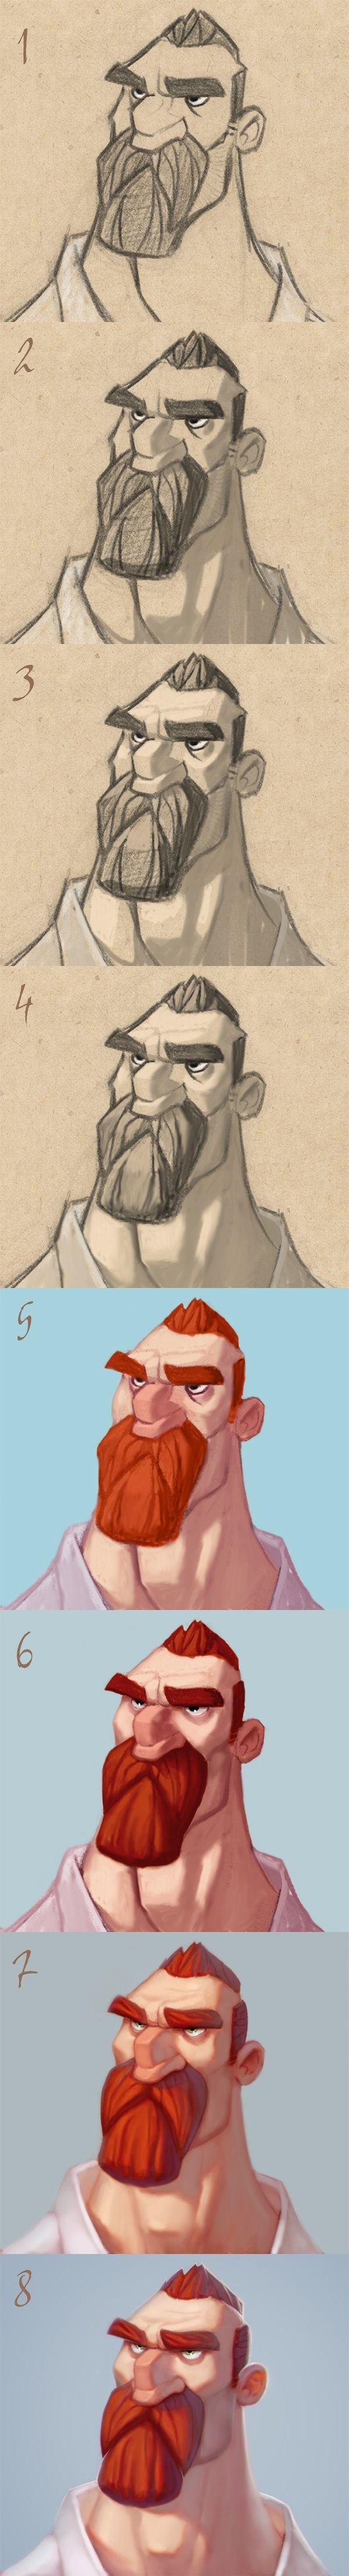 Character Design Tutorial Step By Step : Tutorial on drawing characters digital painting process